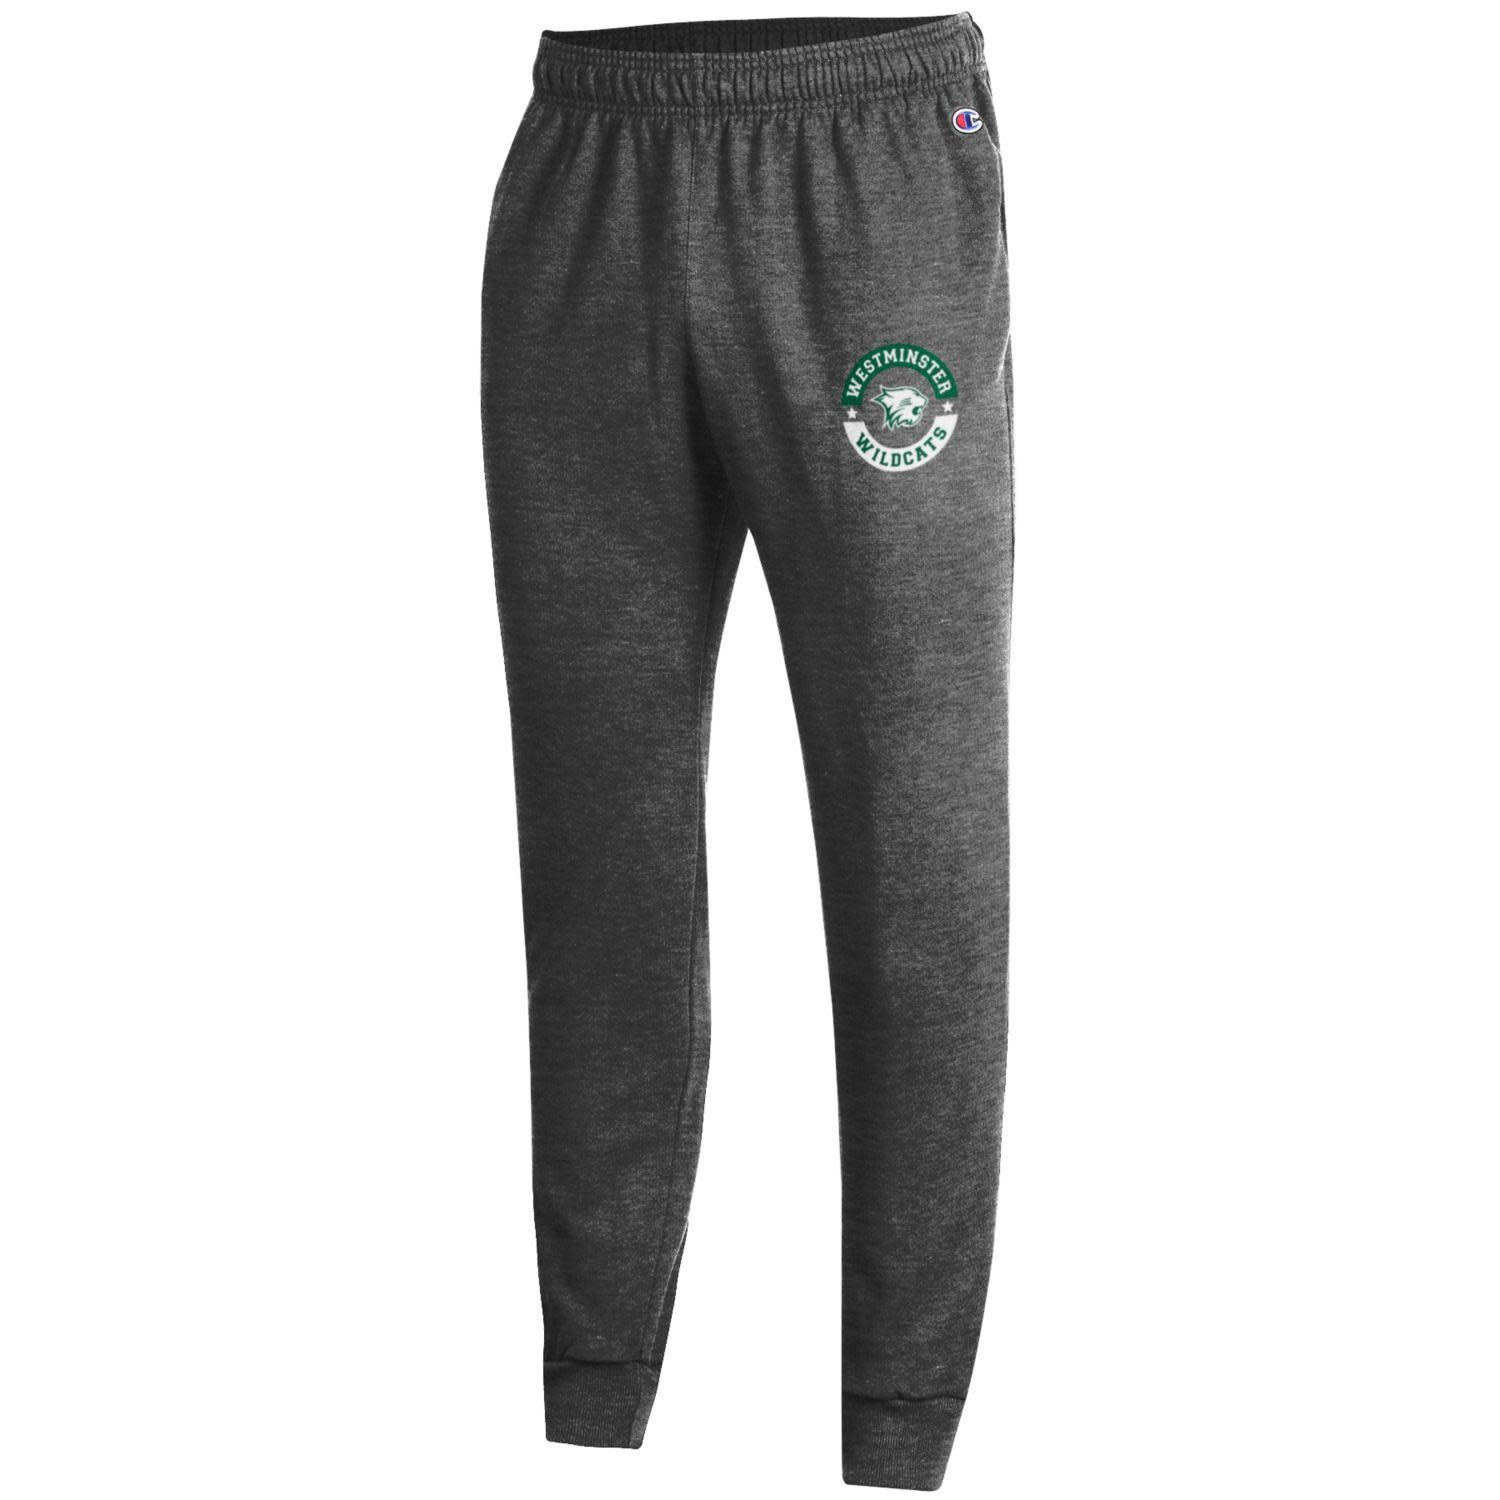 Champion Sweatpants: Champion Charcoal Fleece Jogger w/ Circle Stars